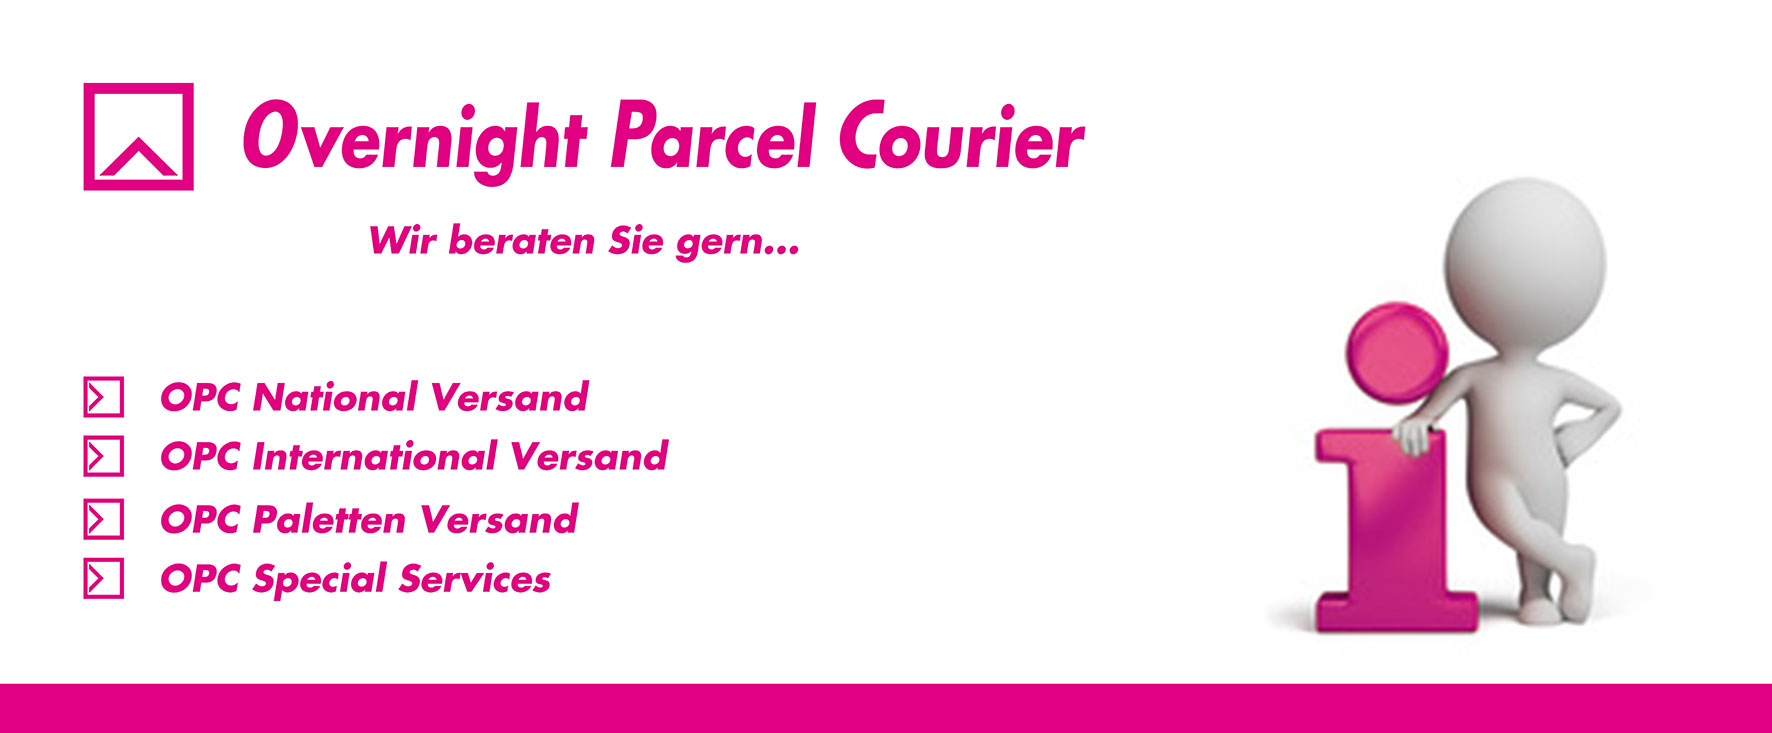 OPC Overnight Courier - Services